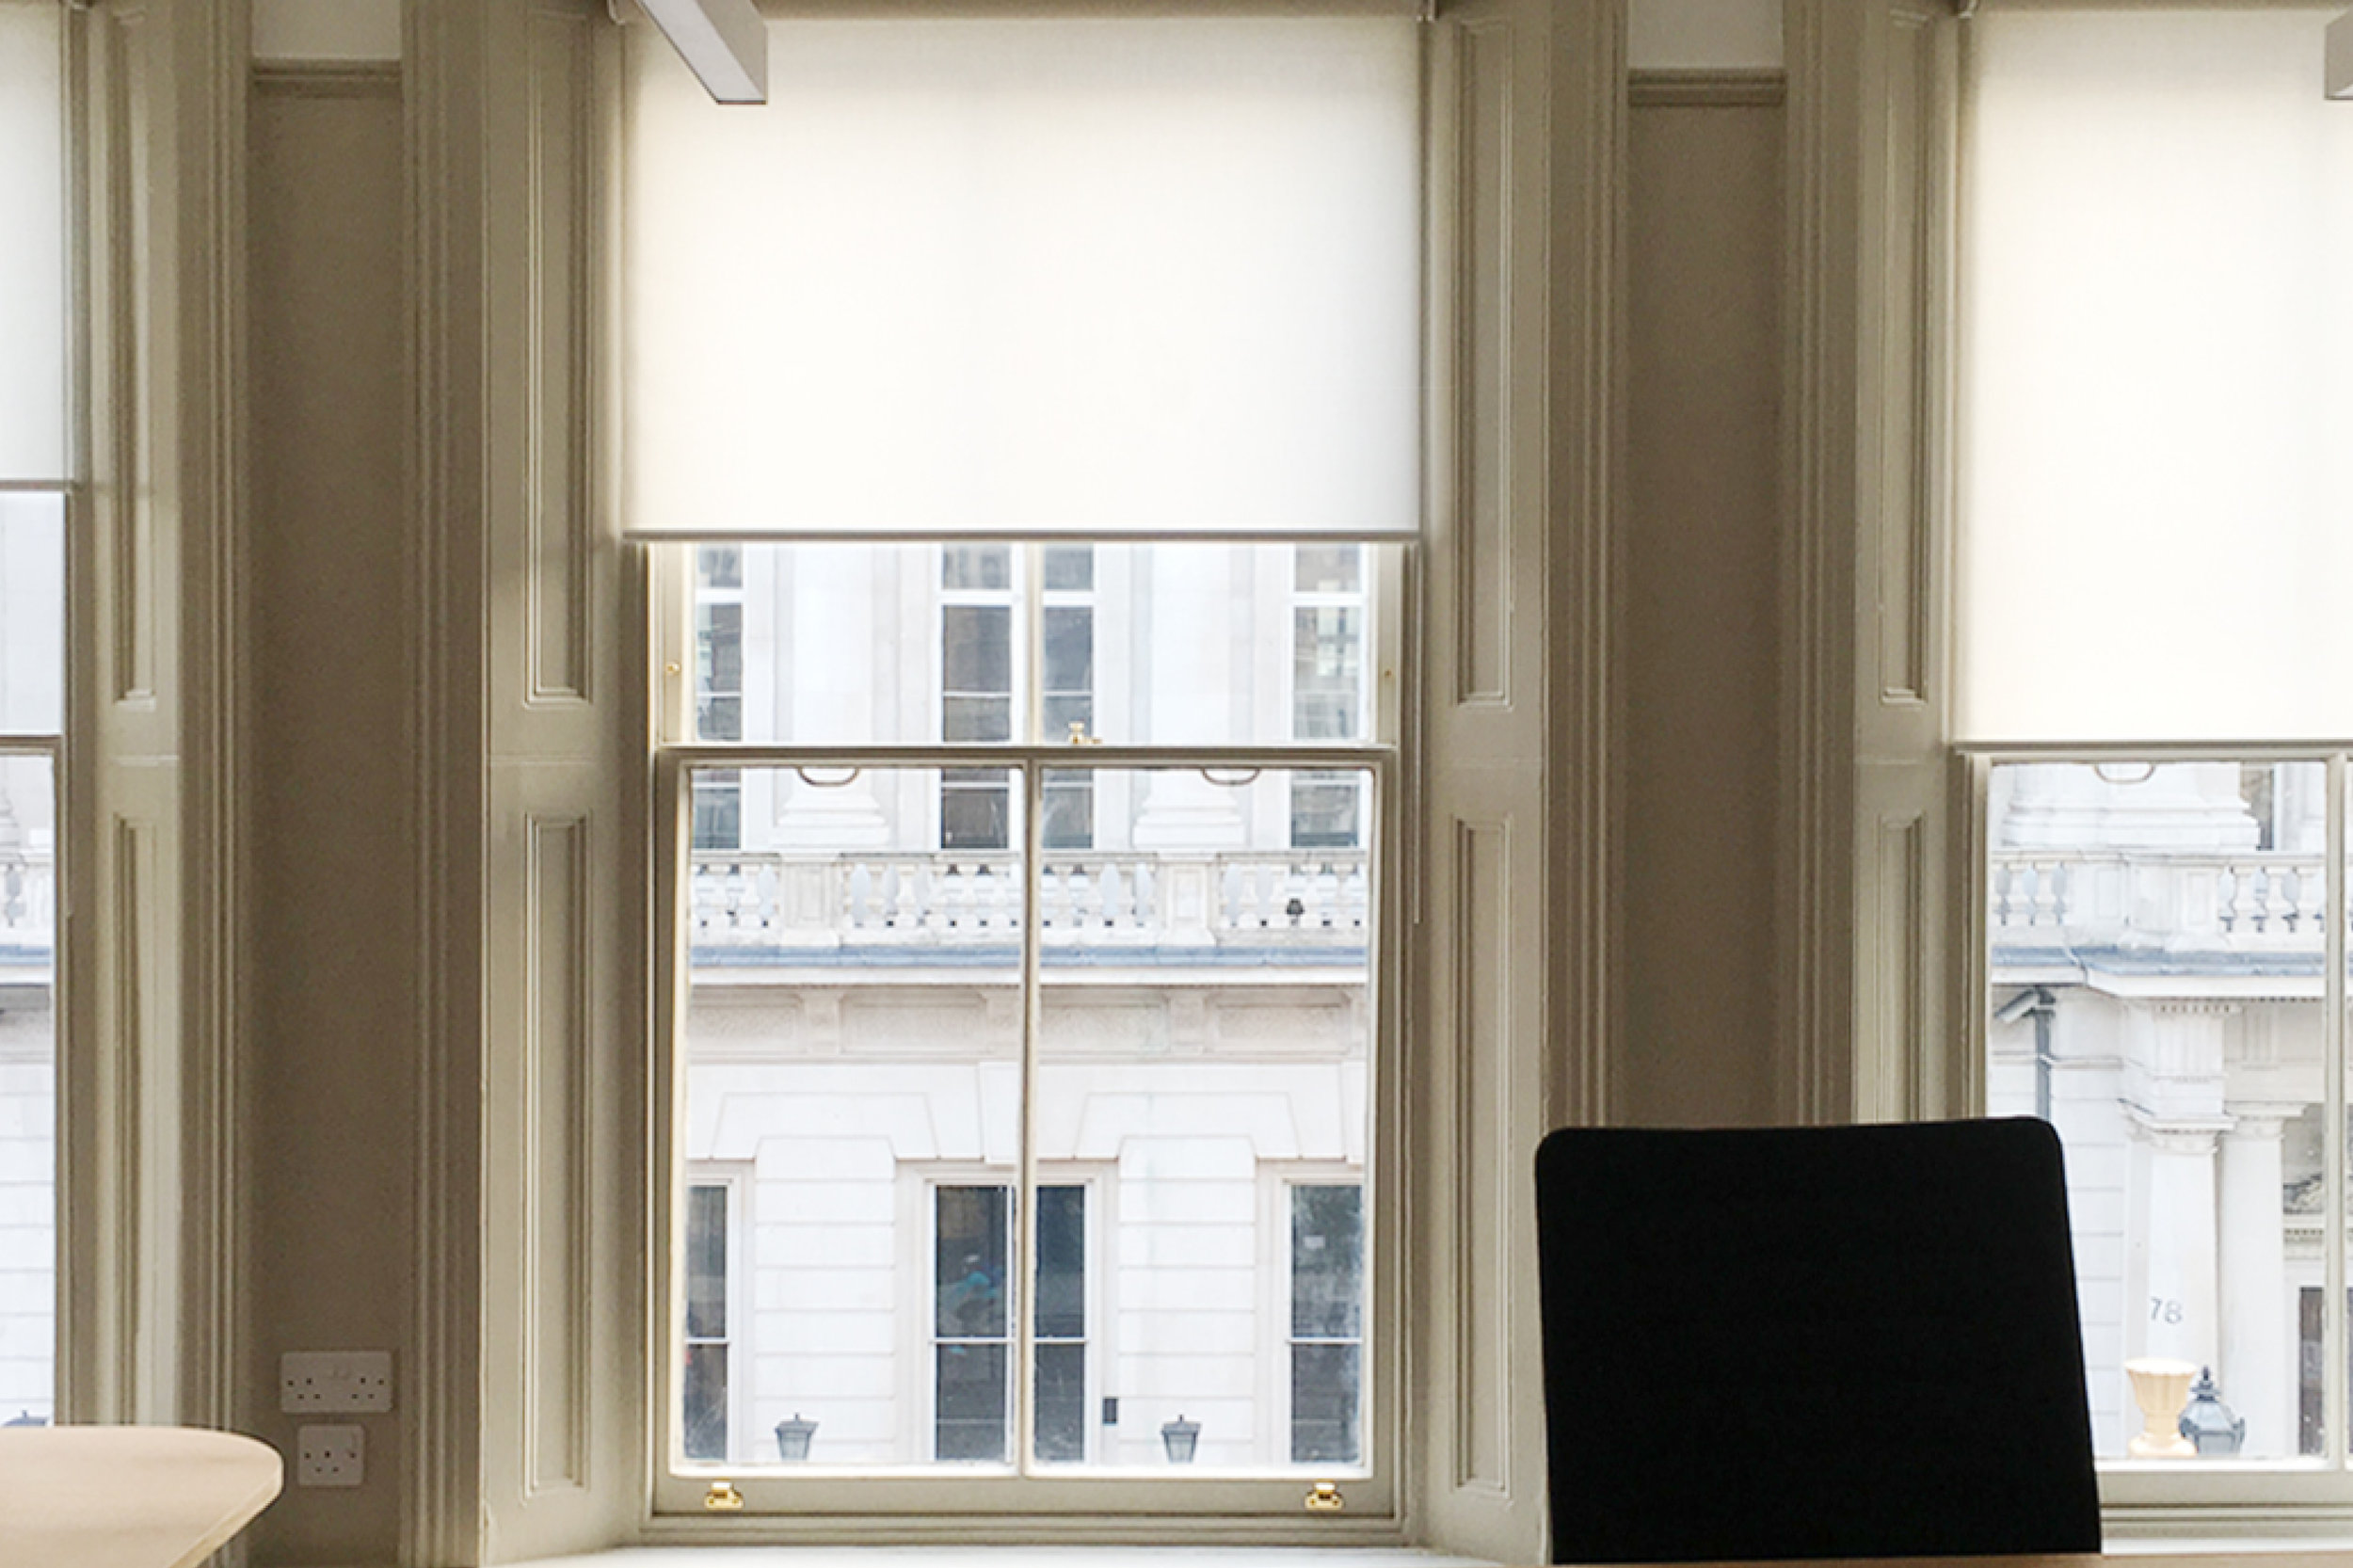 New Office Fit Out in Berry Bros. and Rudd Offices St James's London